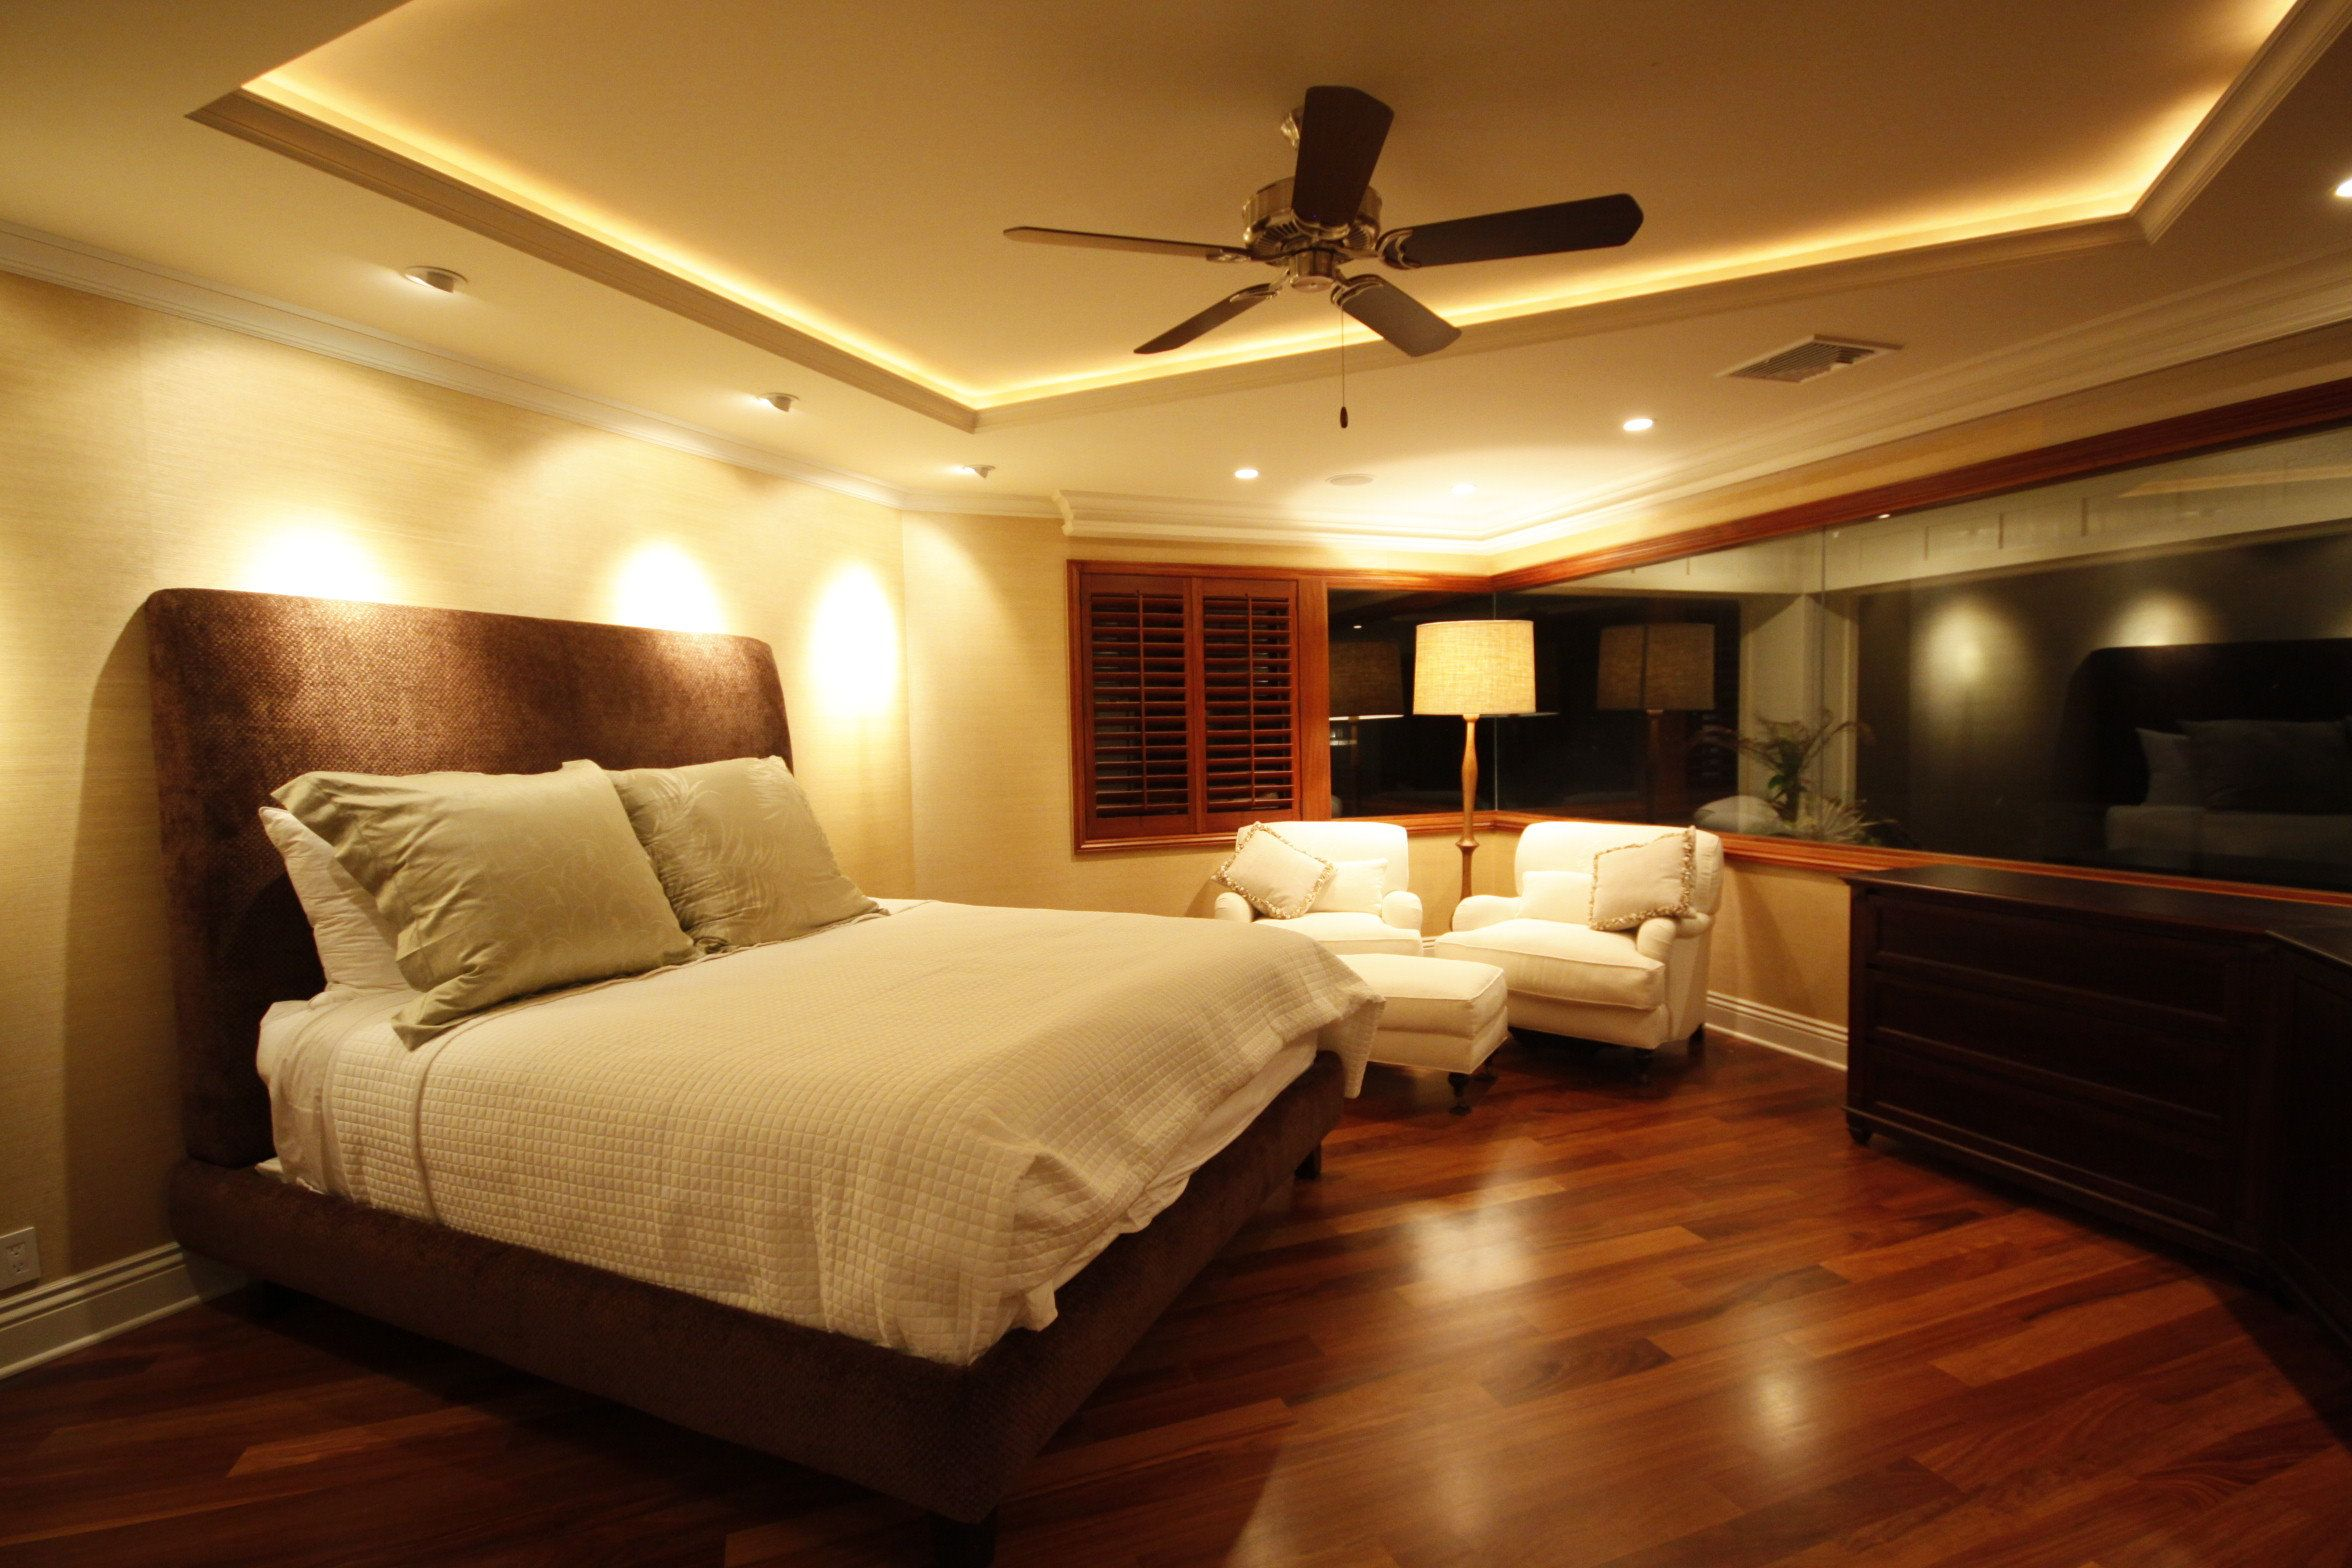 Appealing master bedroom modern decor with wooden floors for Unique master bedroom designs